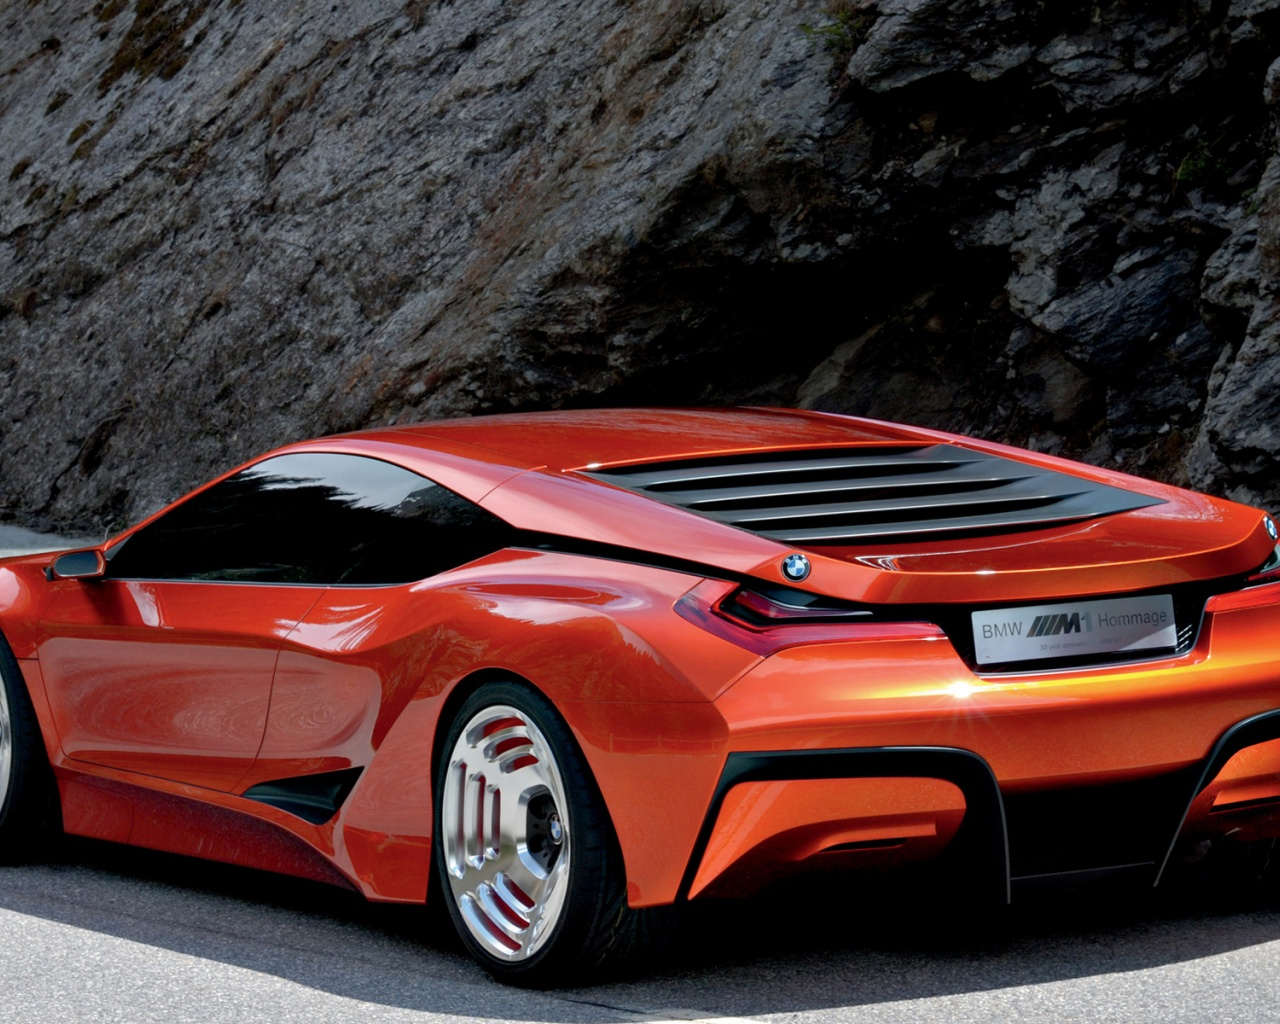 1280x1024 Bmw M1 Hommage 12 Desktop Pc And Mac Wallpaper